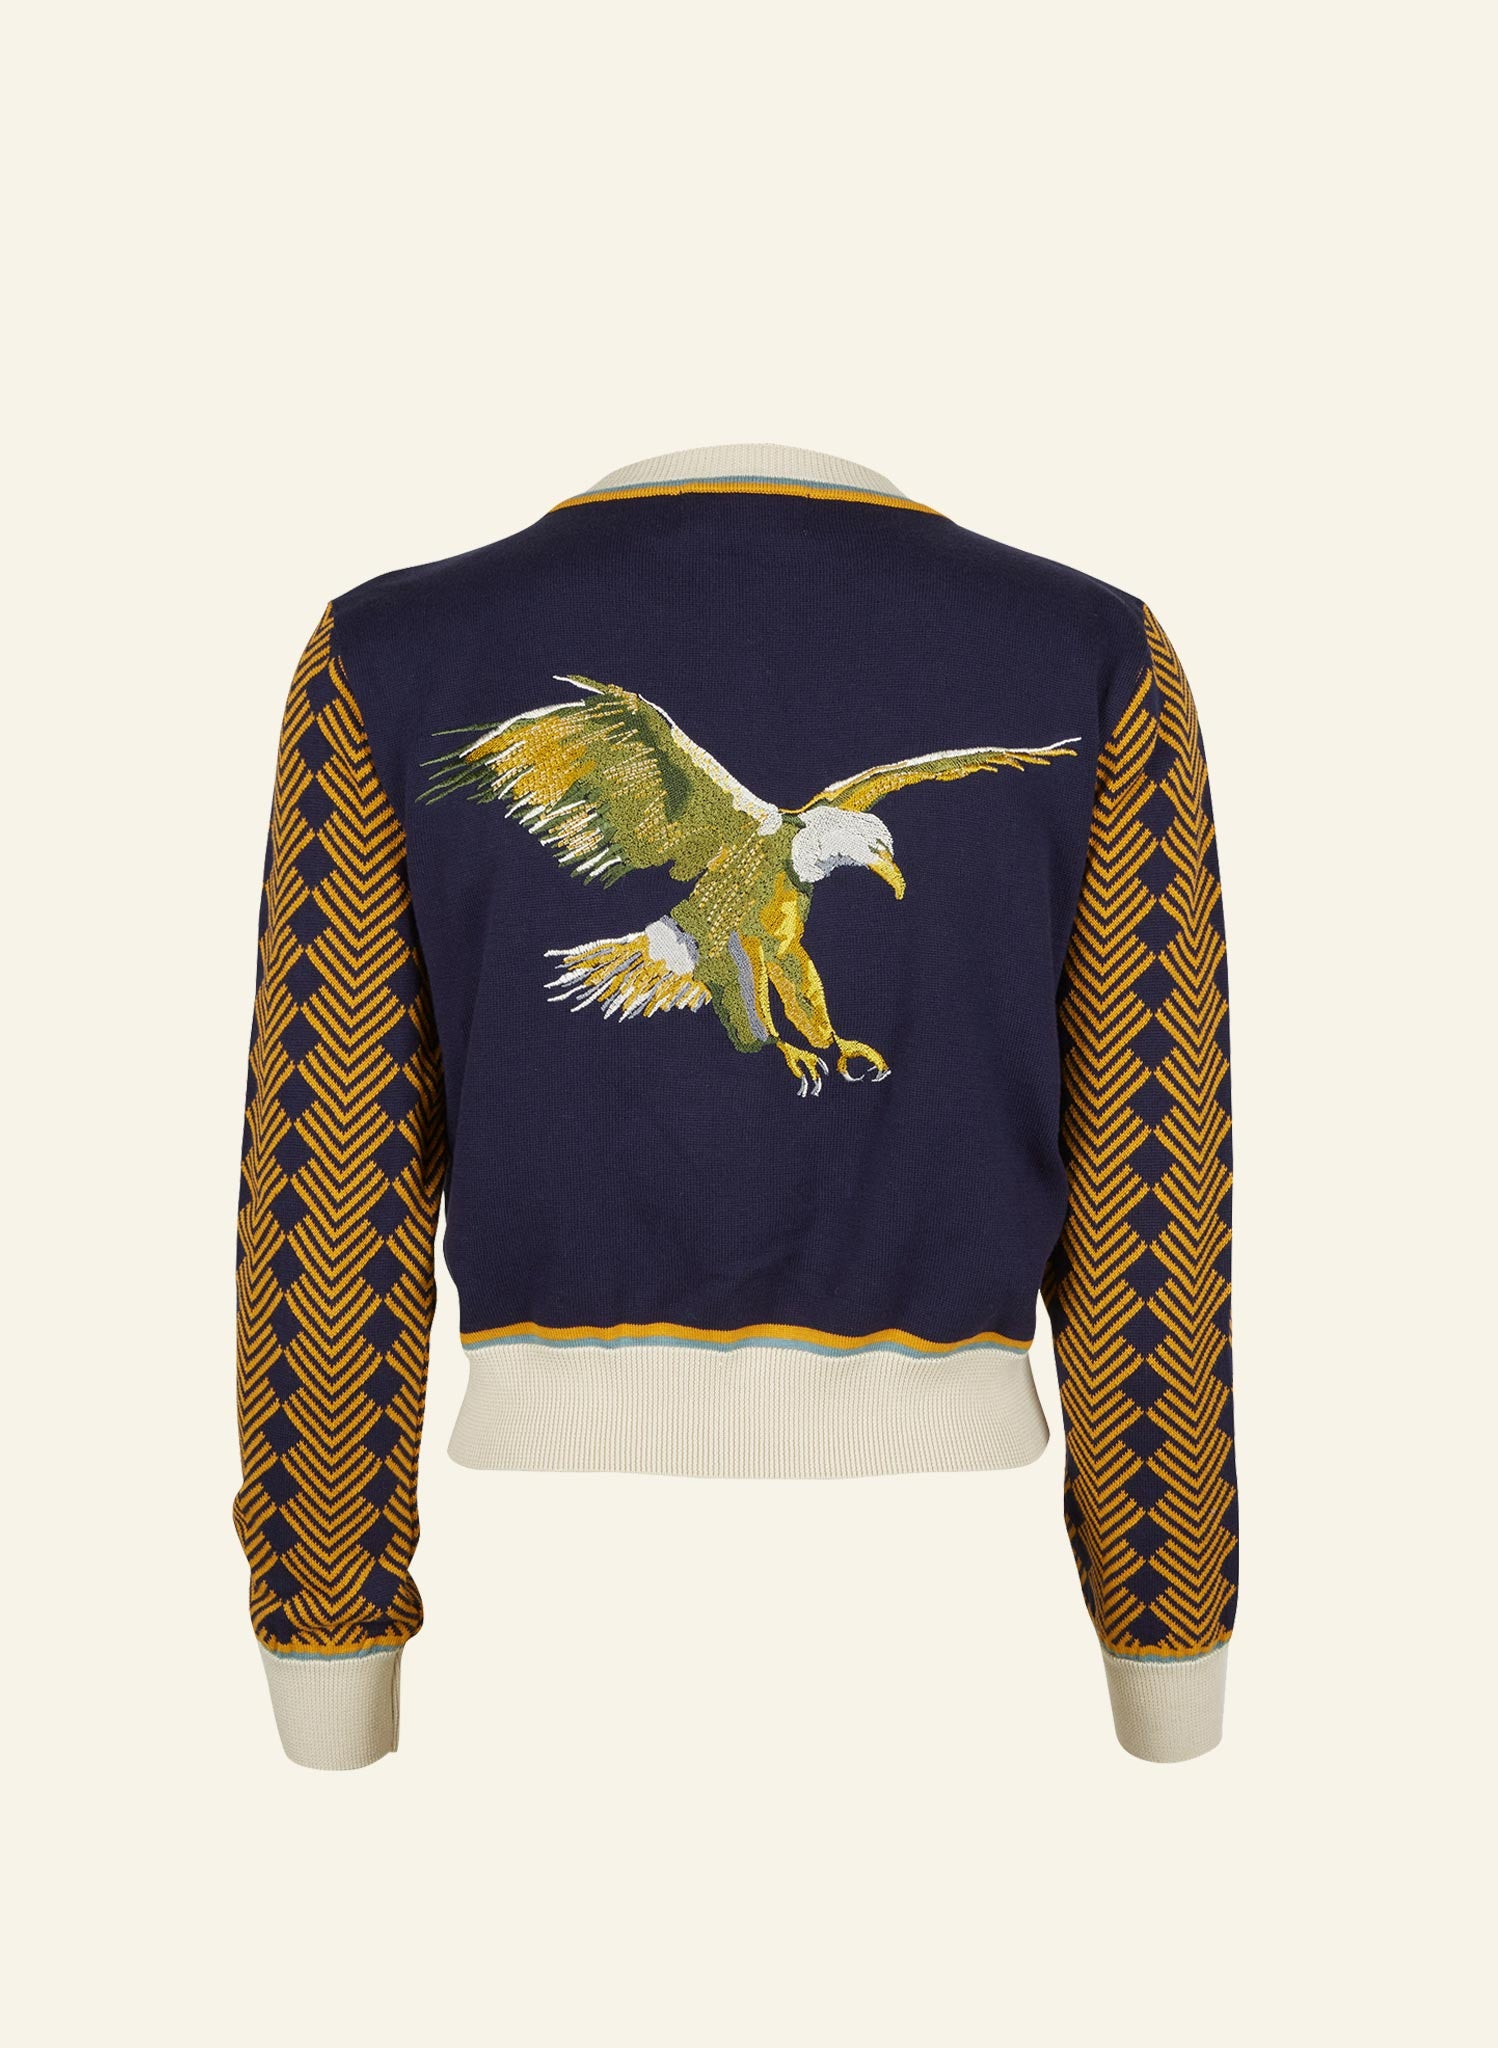 Vera - Navy Embroidered Flying Eagle - Organic Cotton Cardigan